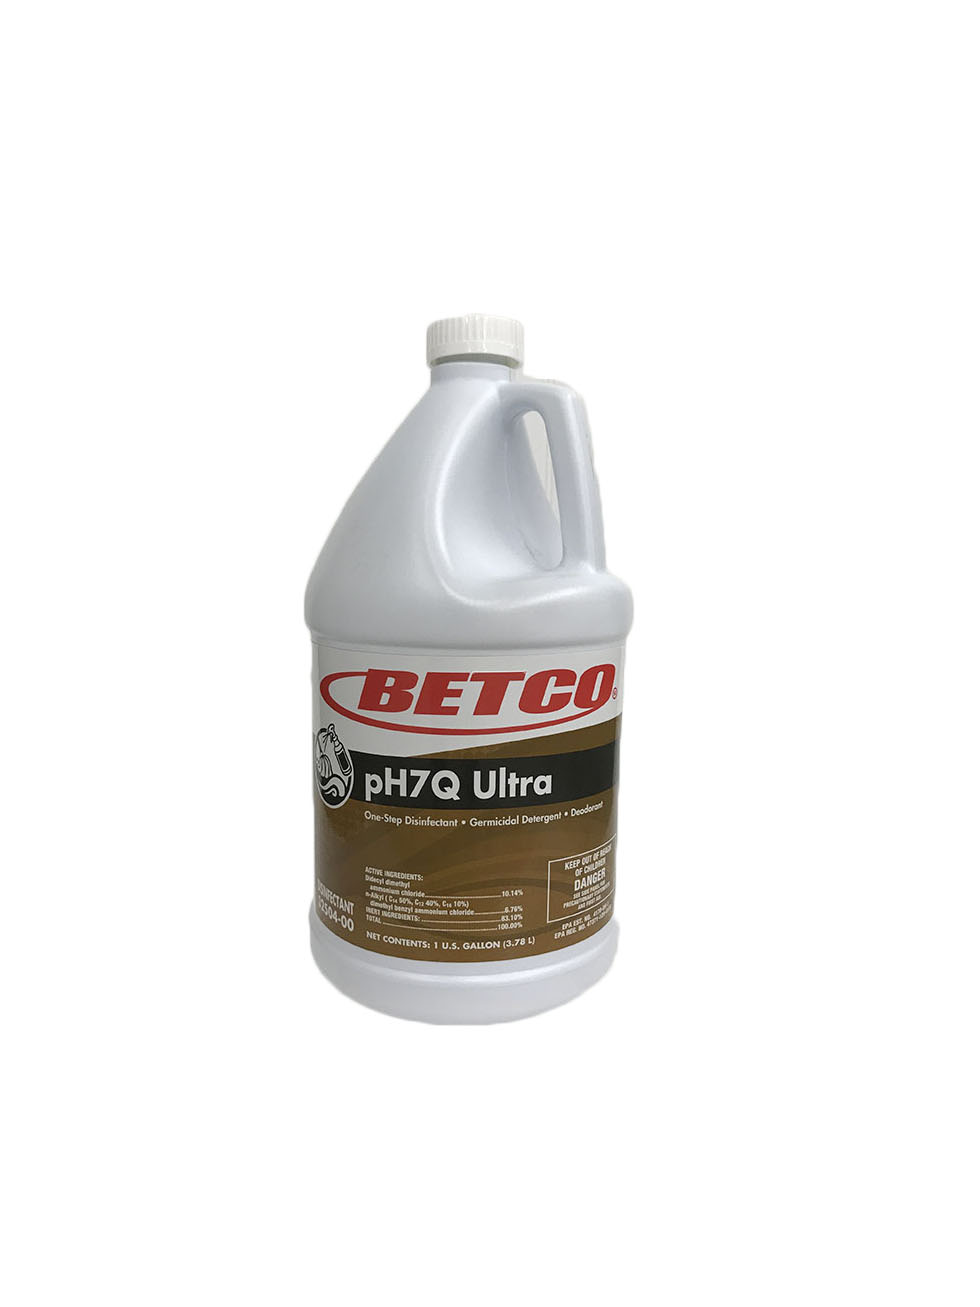 Betco Ph7q Ultra Dual Daily Disinfectant Cleaner Pc